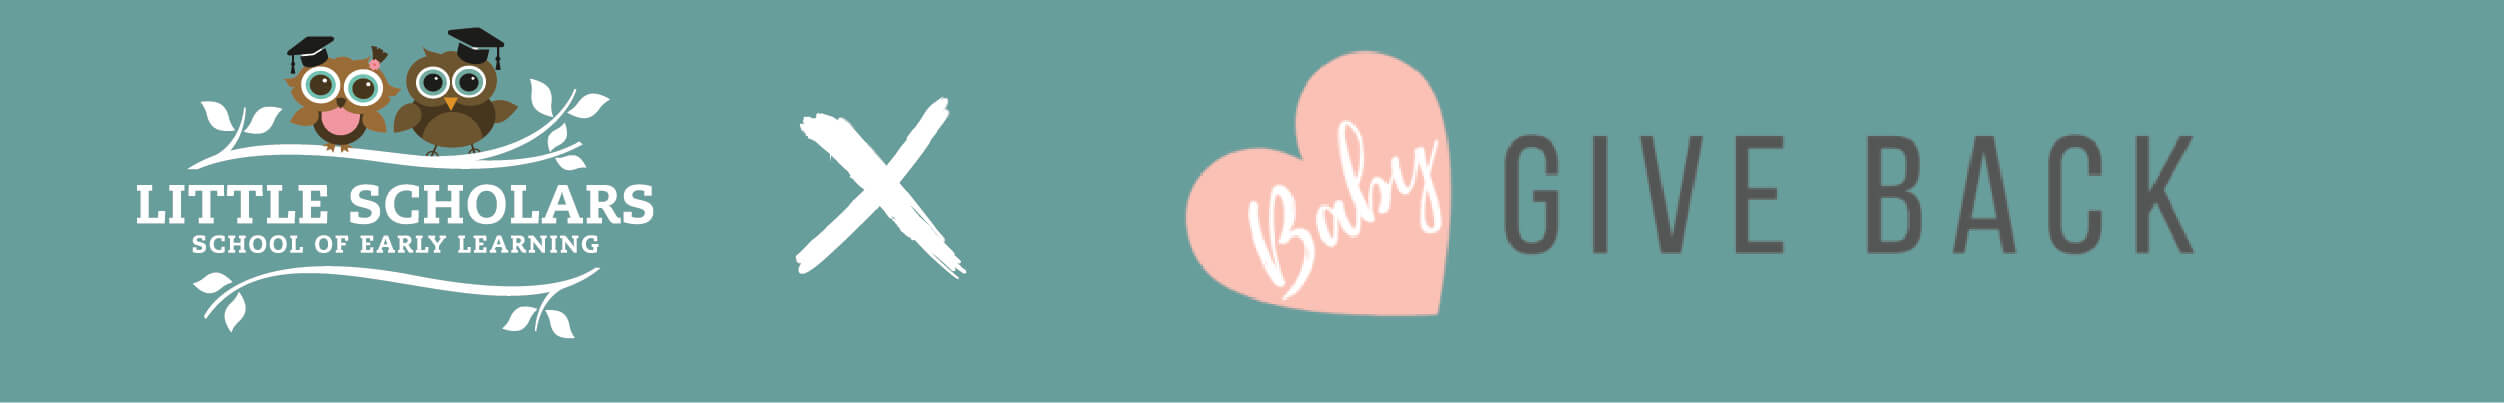 Baby Give Back 01